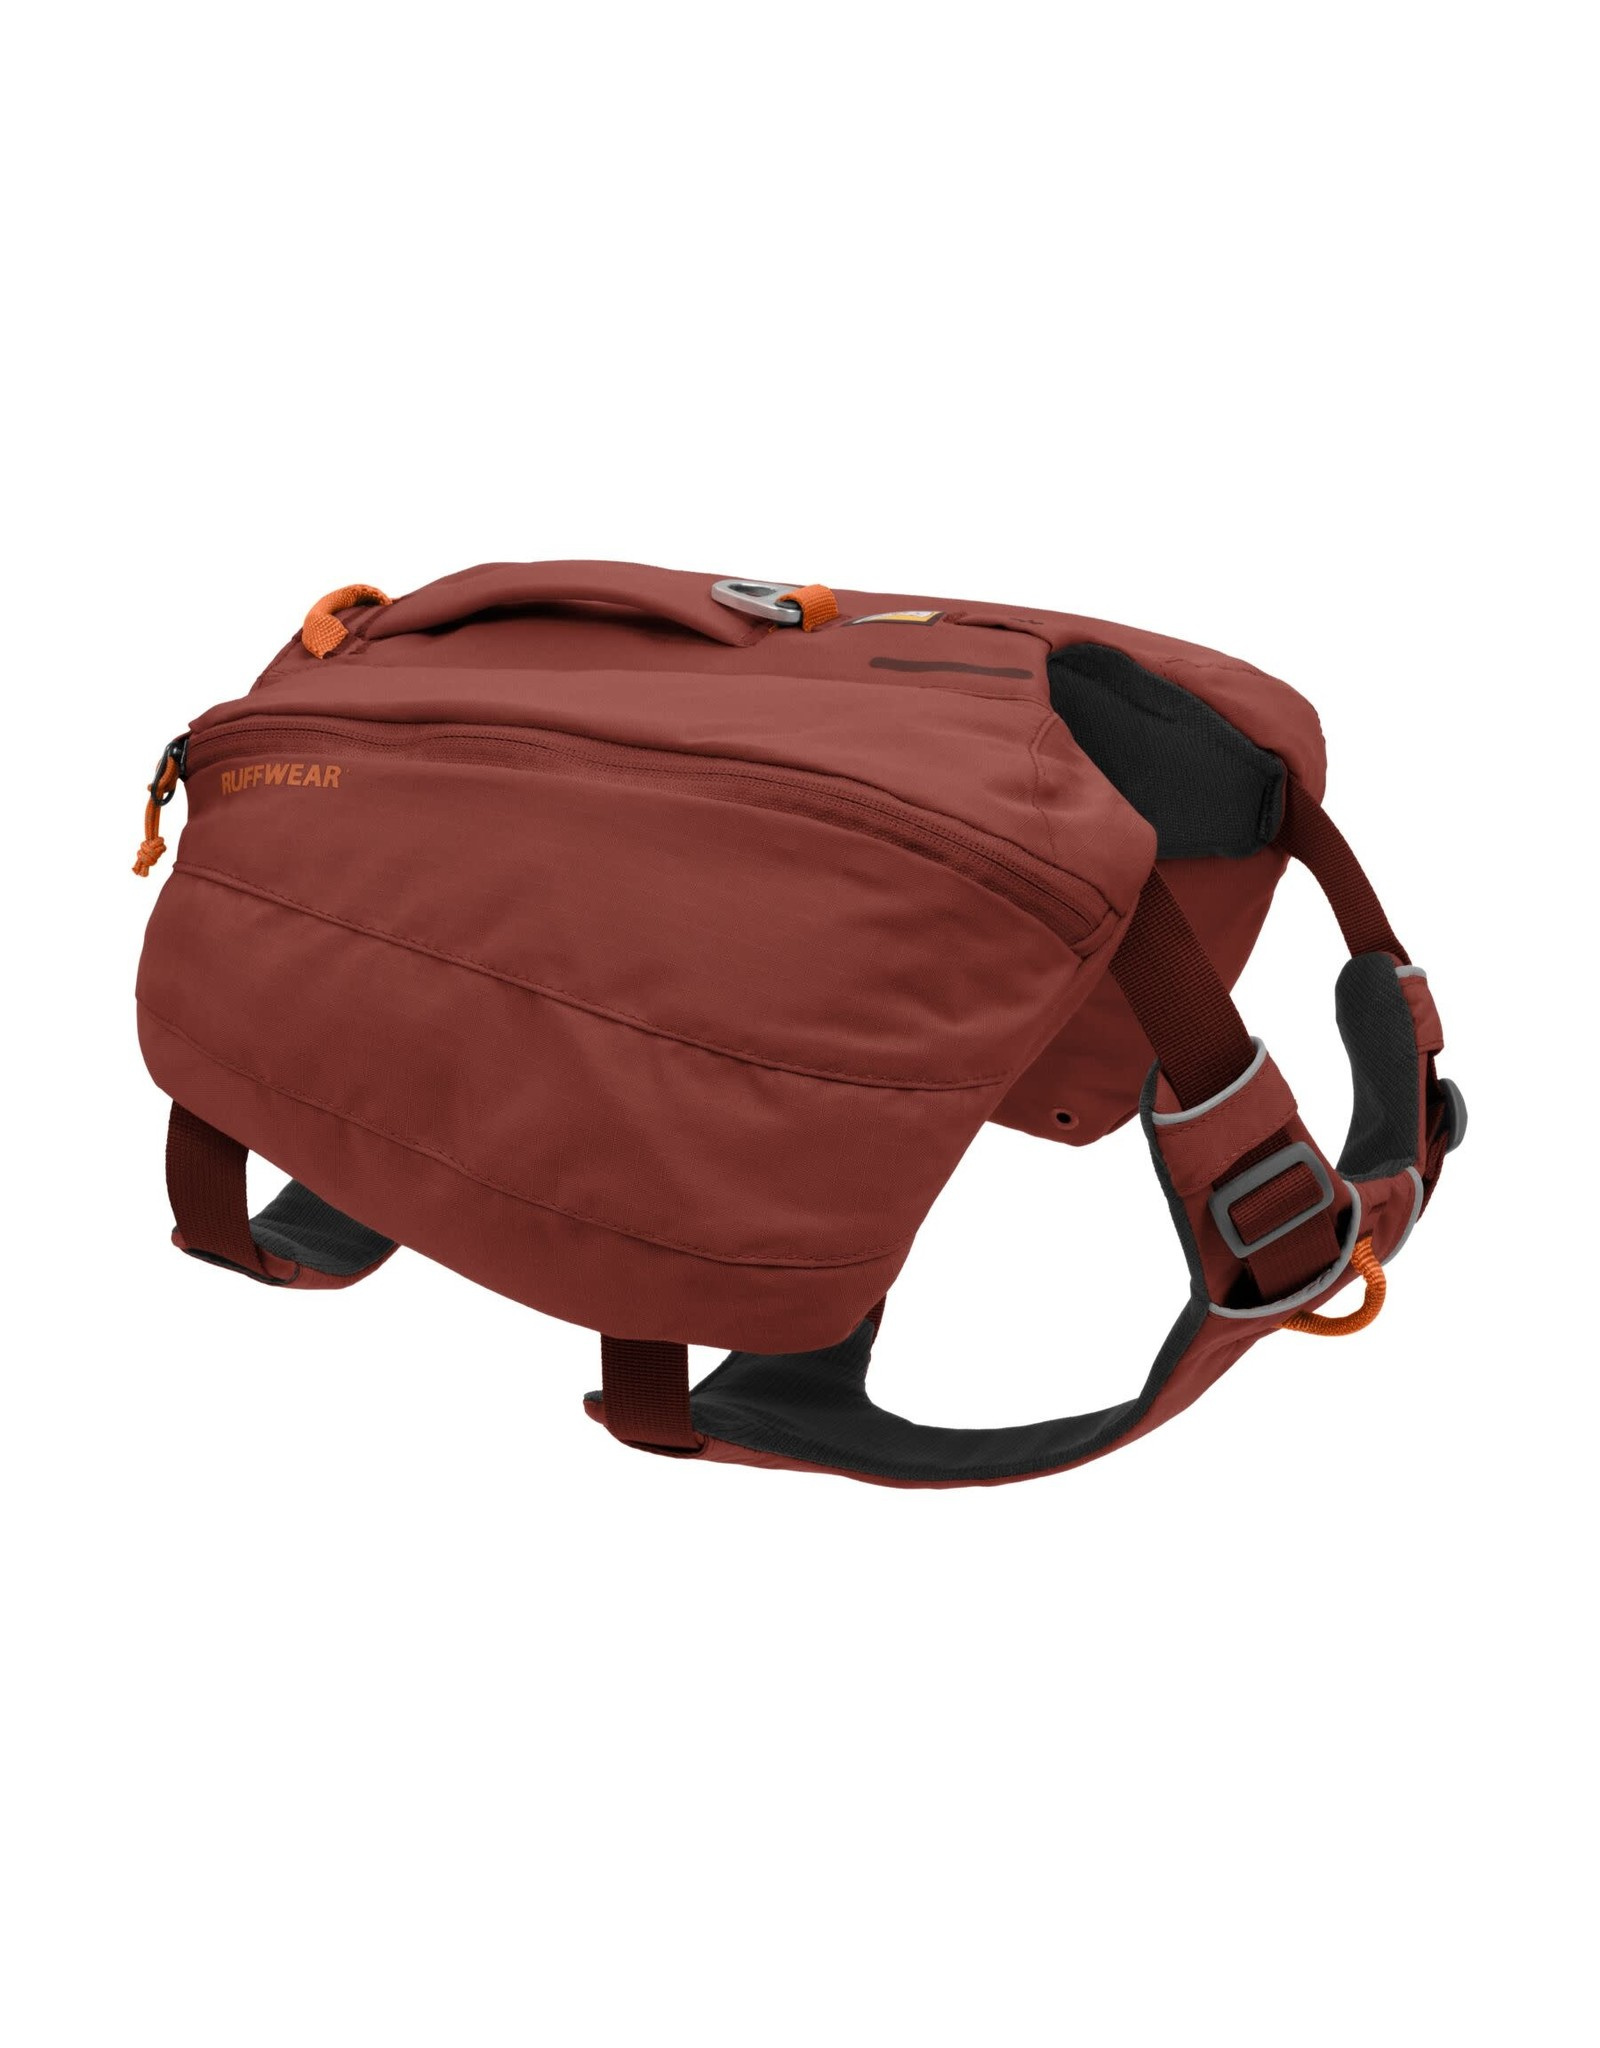 Ruffwear Front Range Day Pack: Red Clay, M